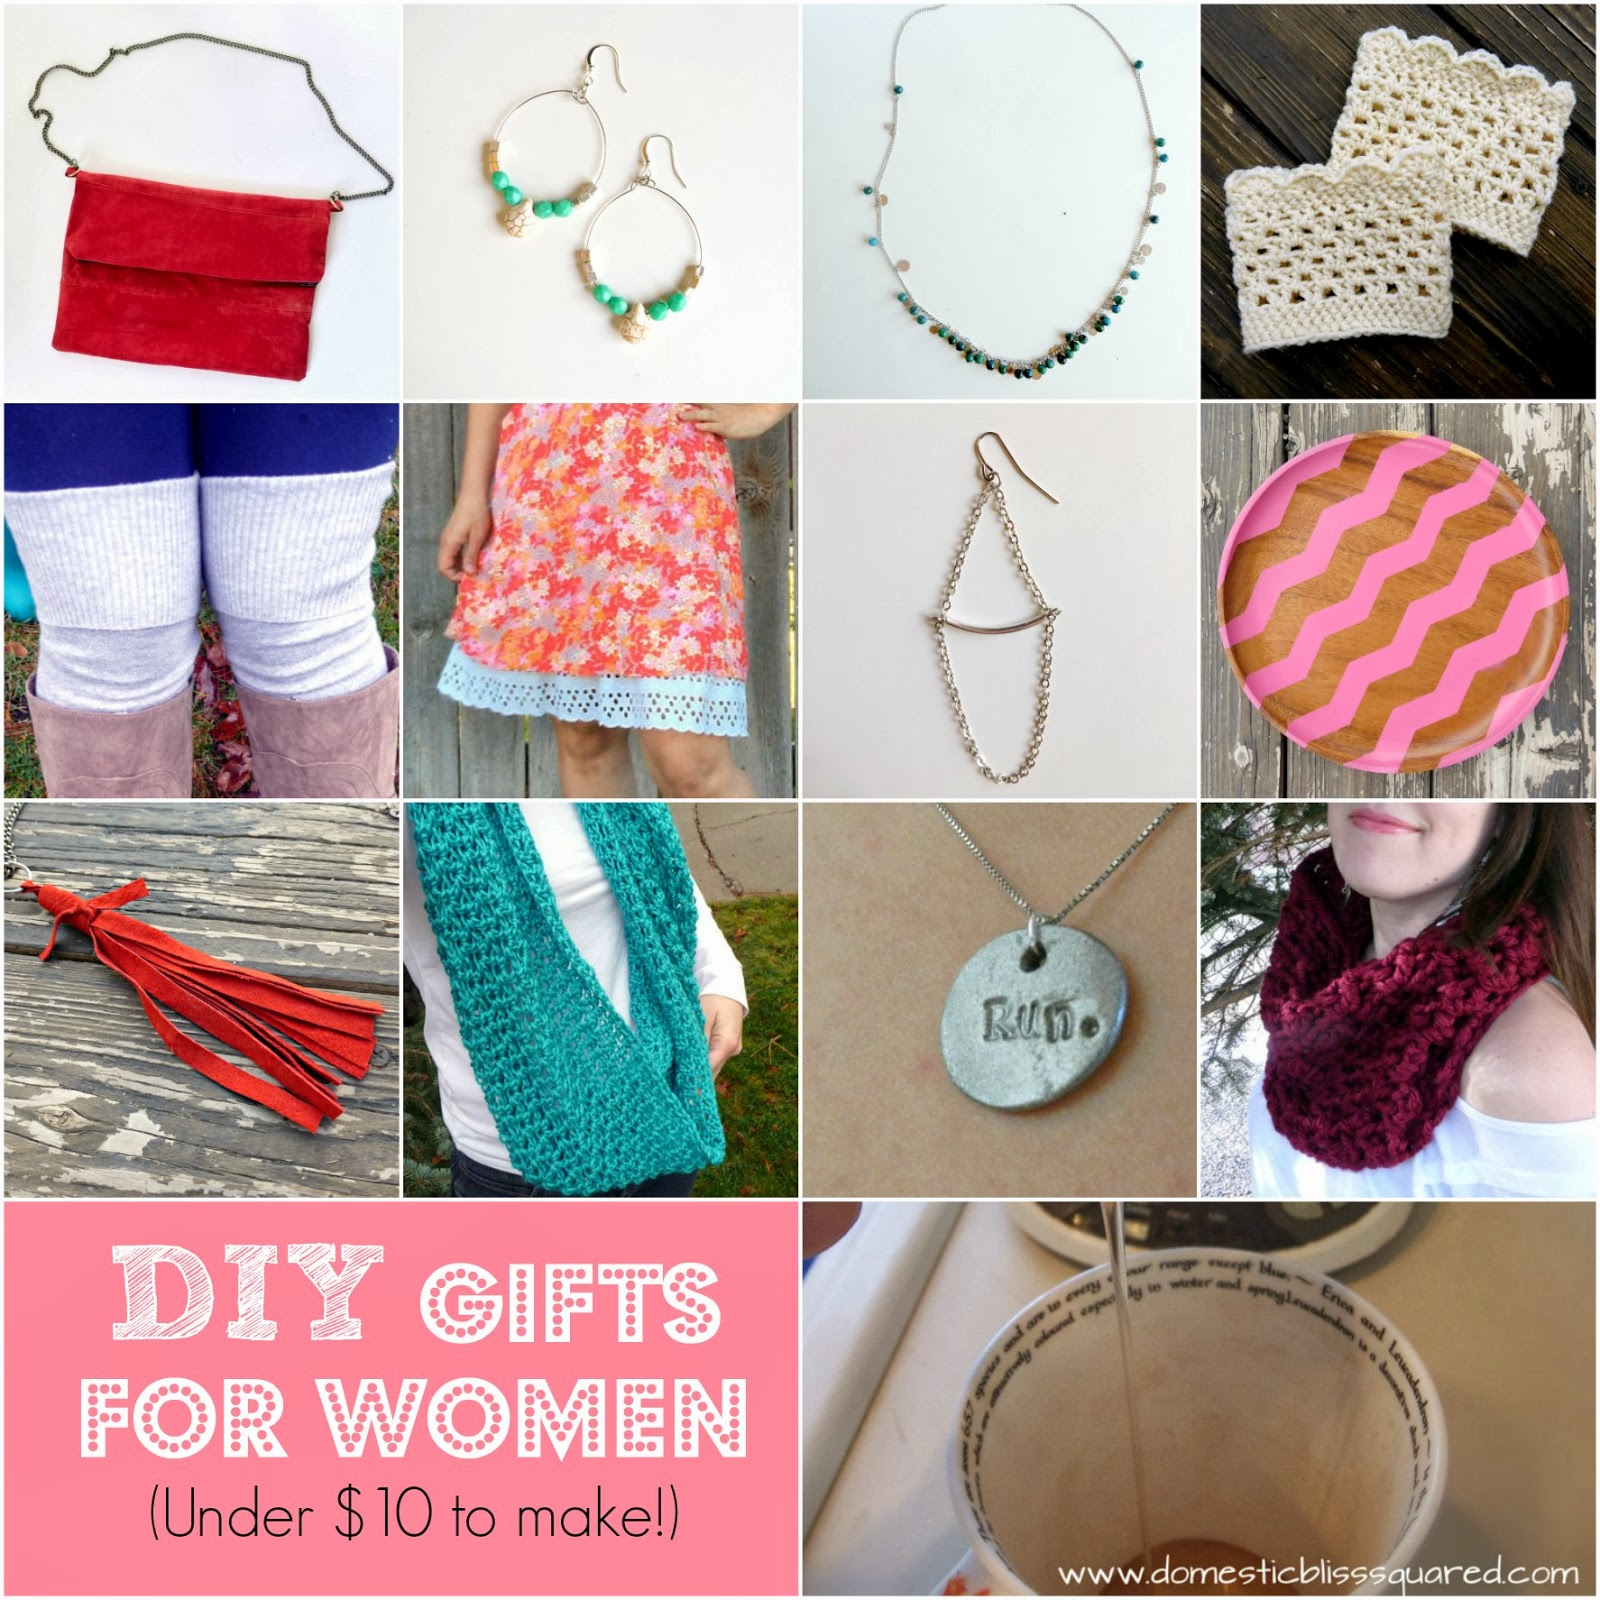 diy gifts to make for women under $10